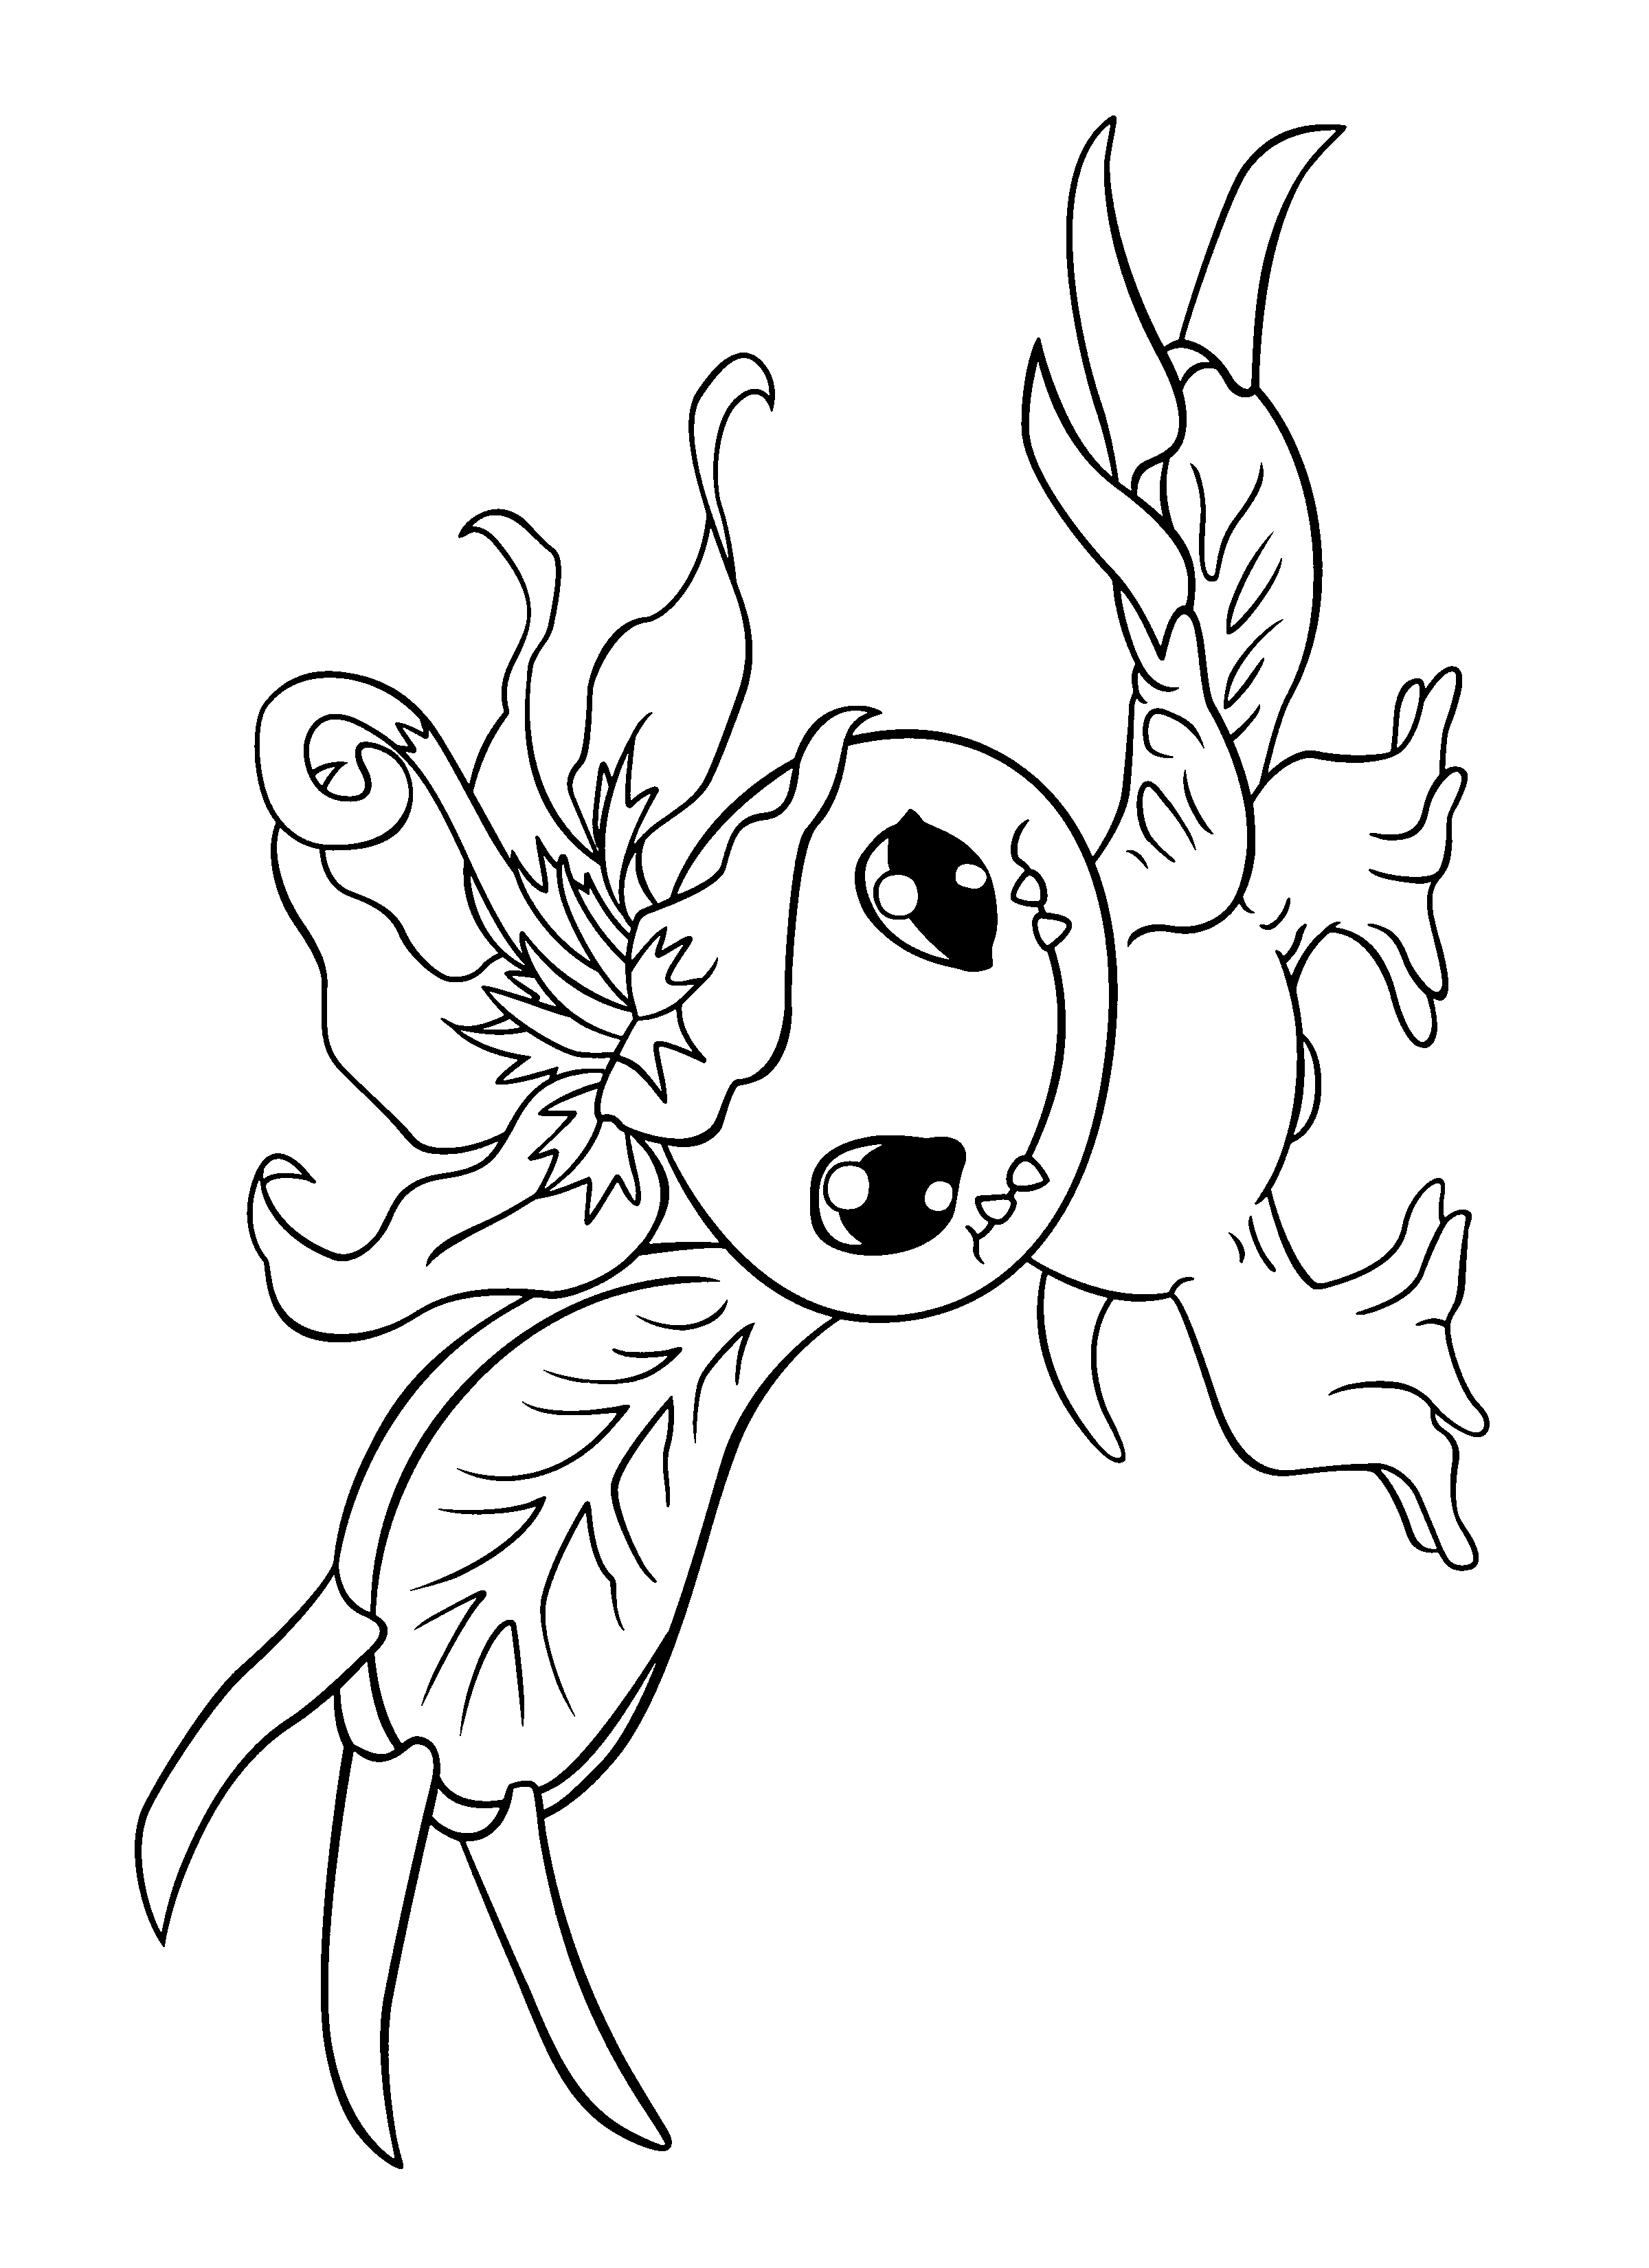 digimon coloring pages | Coloring Page - Digimon coloring pages ...